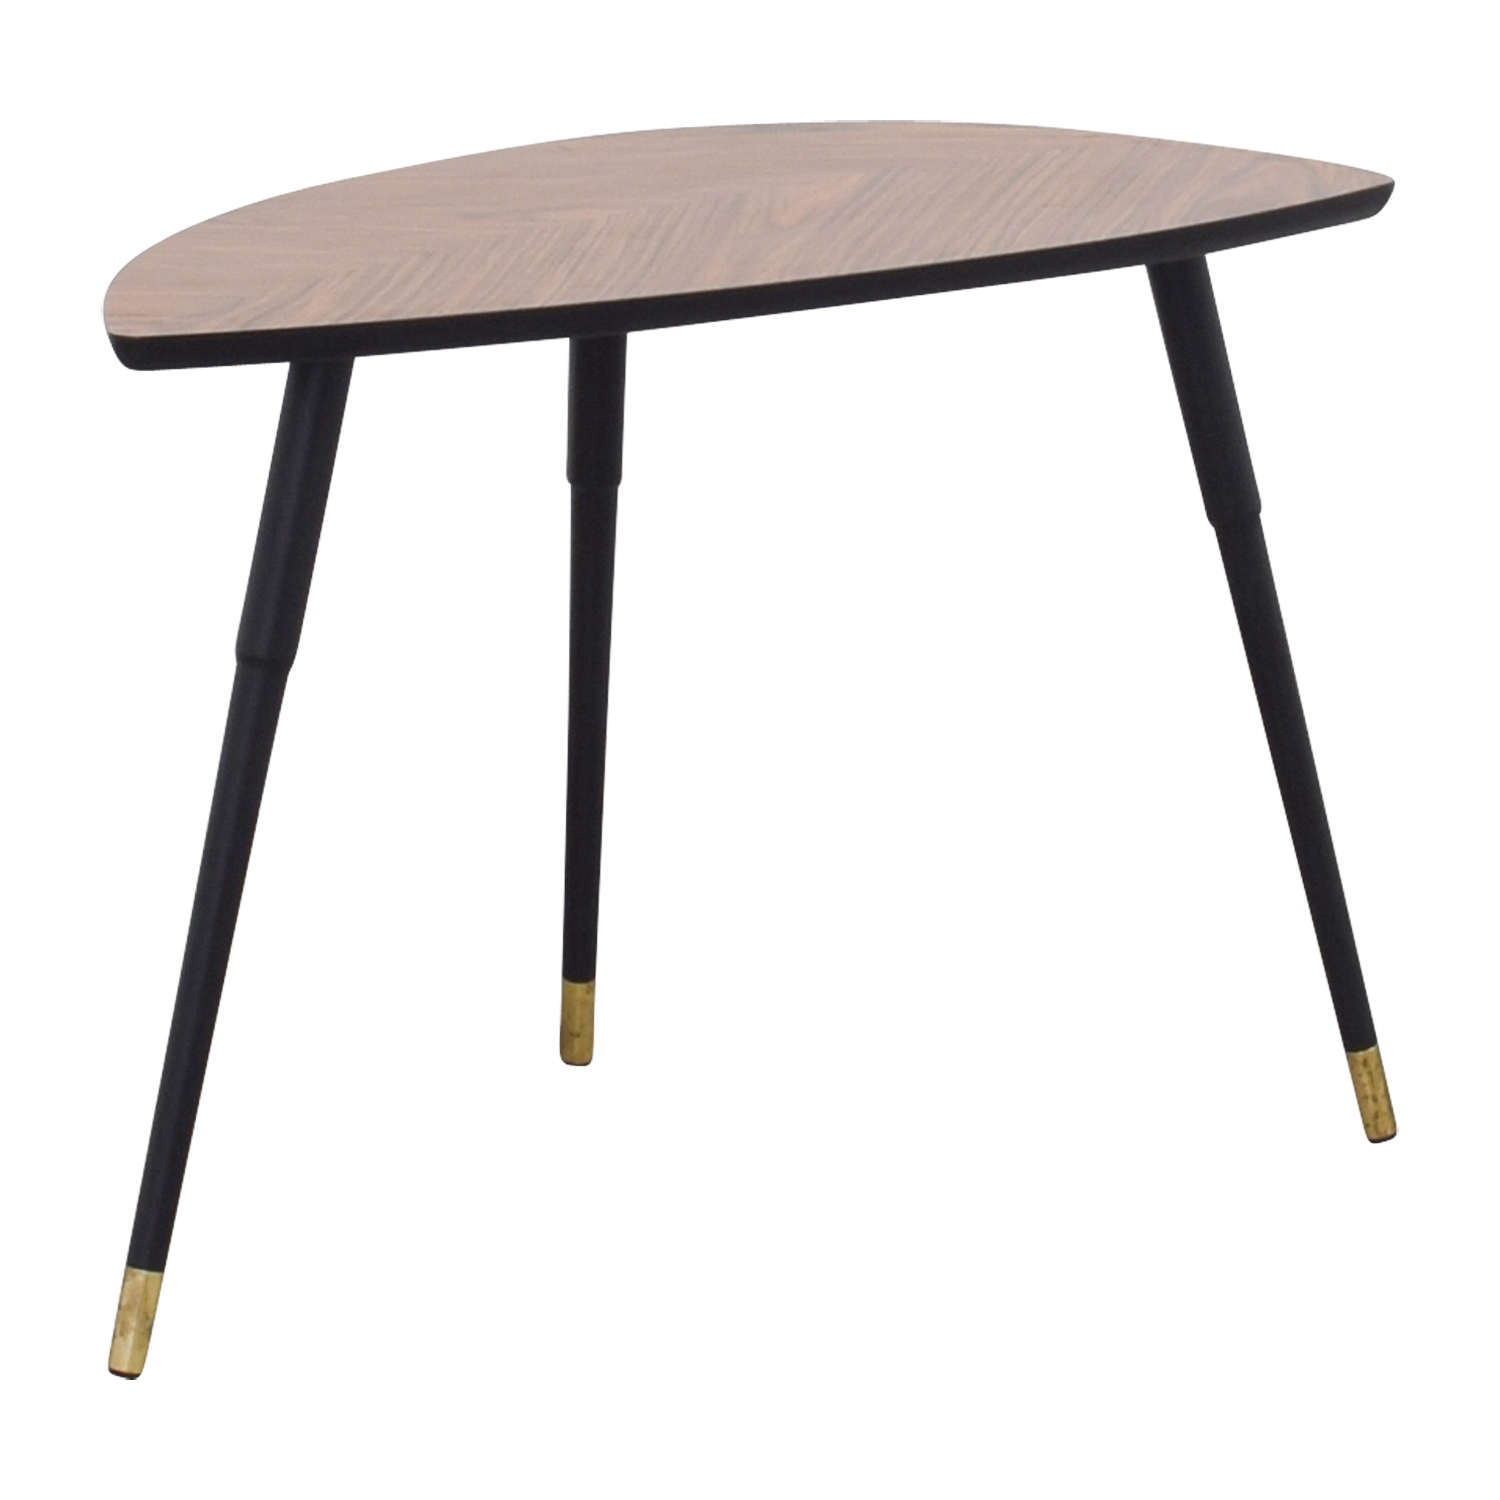 66 off ikea ikea triangular wood end table tables for Ikea end tables salon